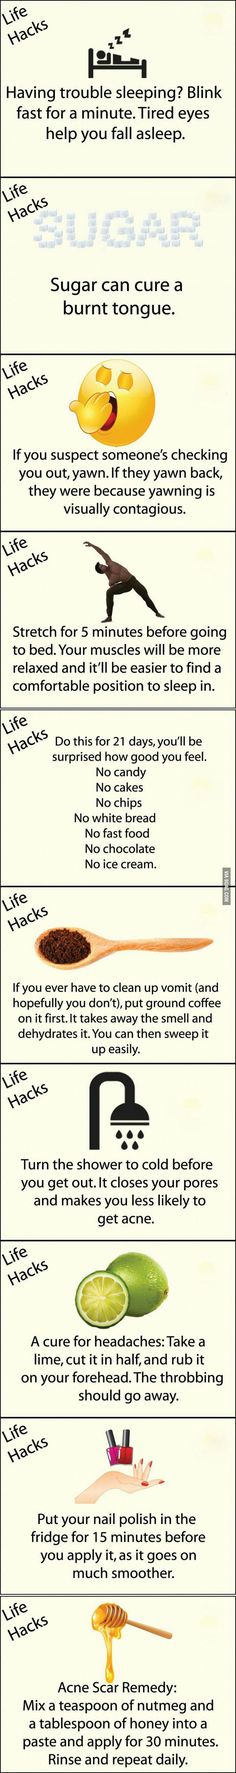 Useful life hacks - 9GAG